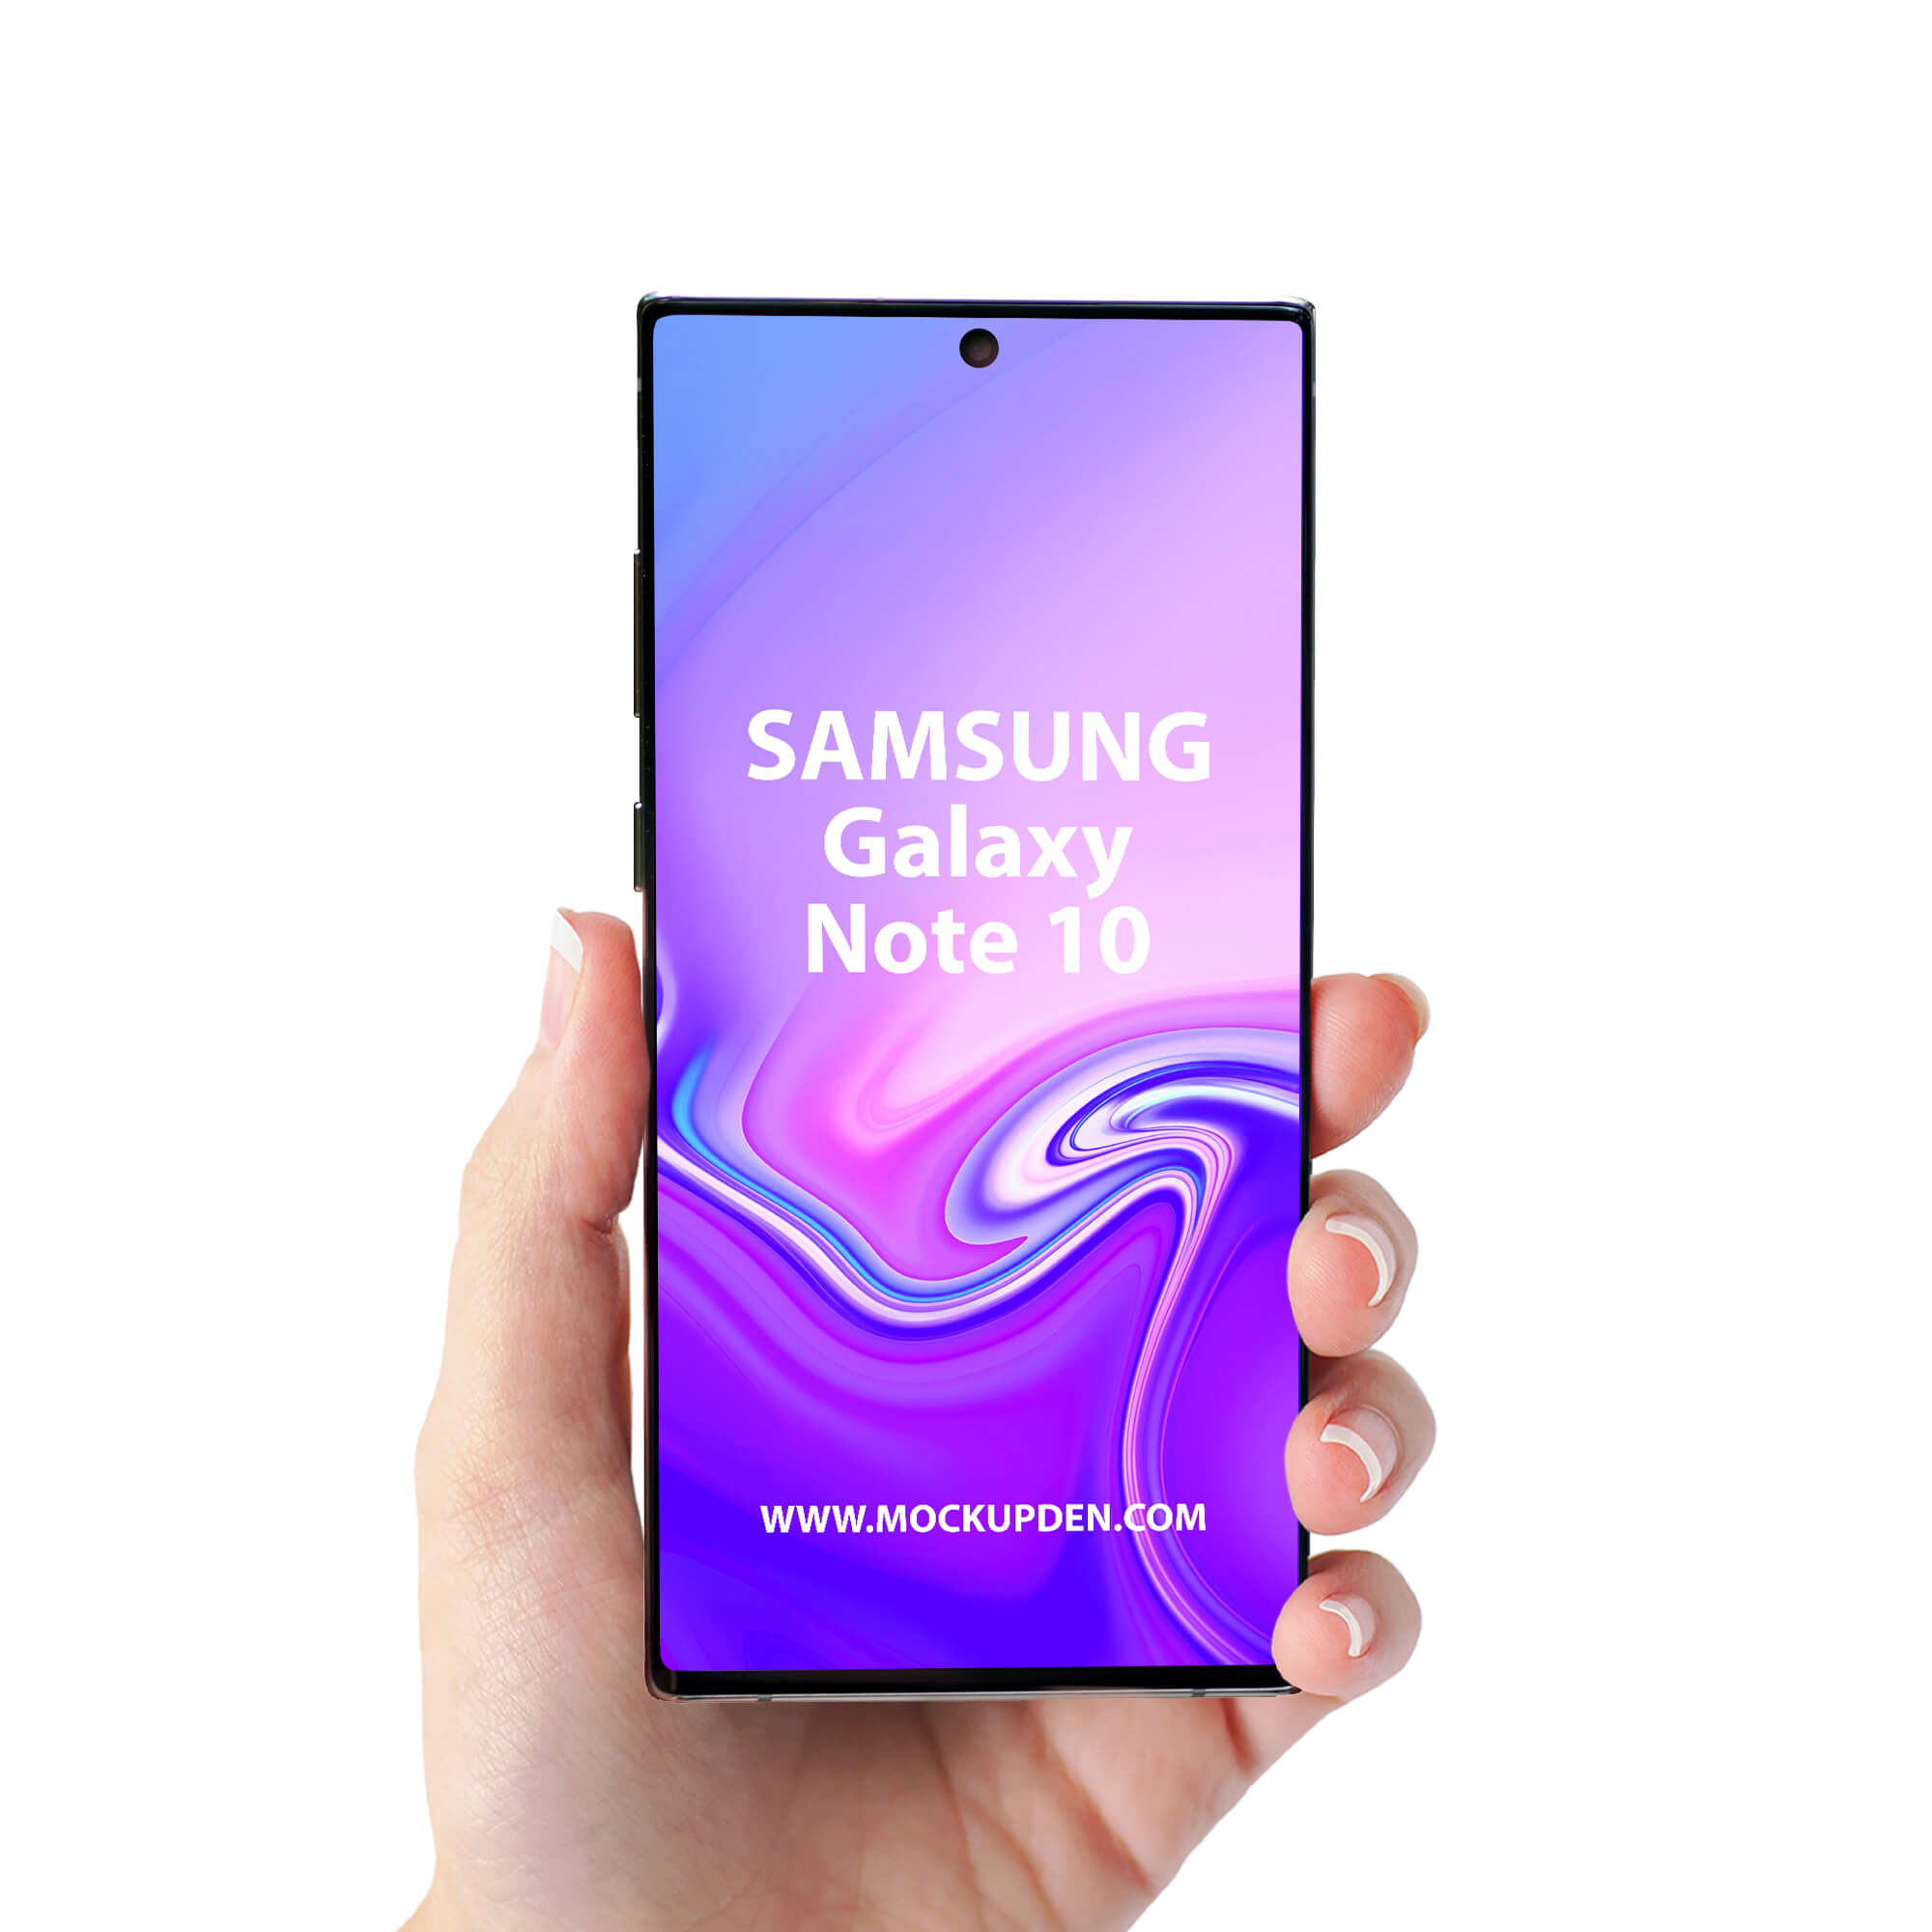 Design Free Galaxy Note 10 in Hand Mockup PSD Template